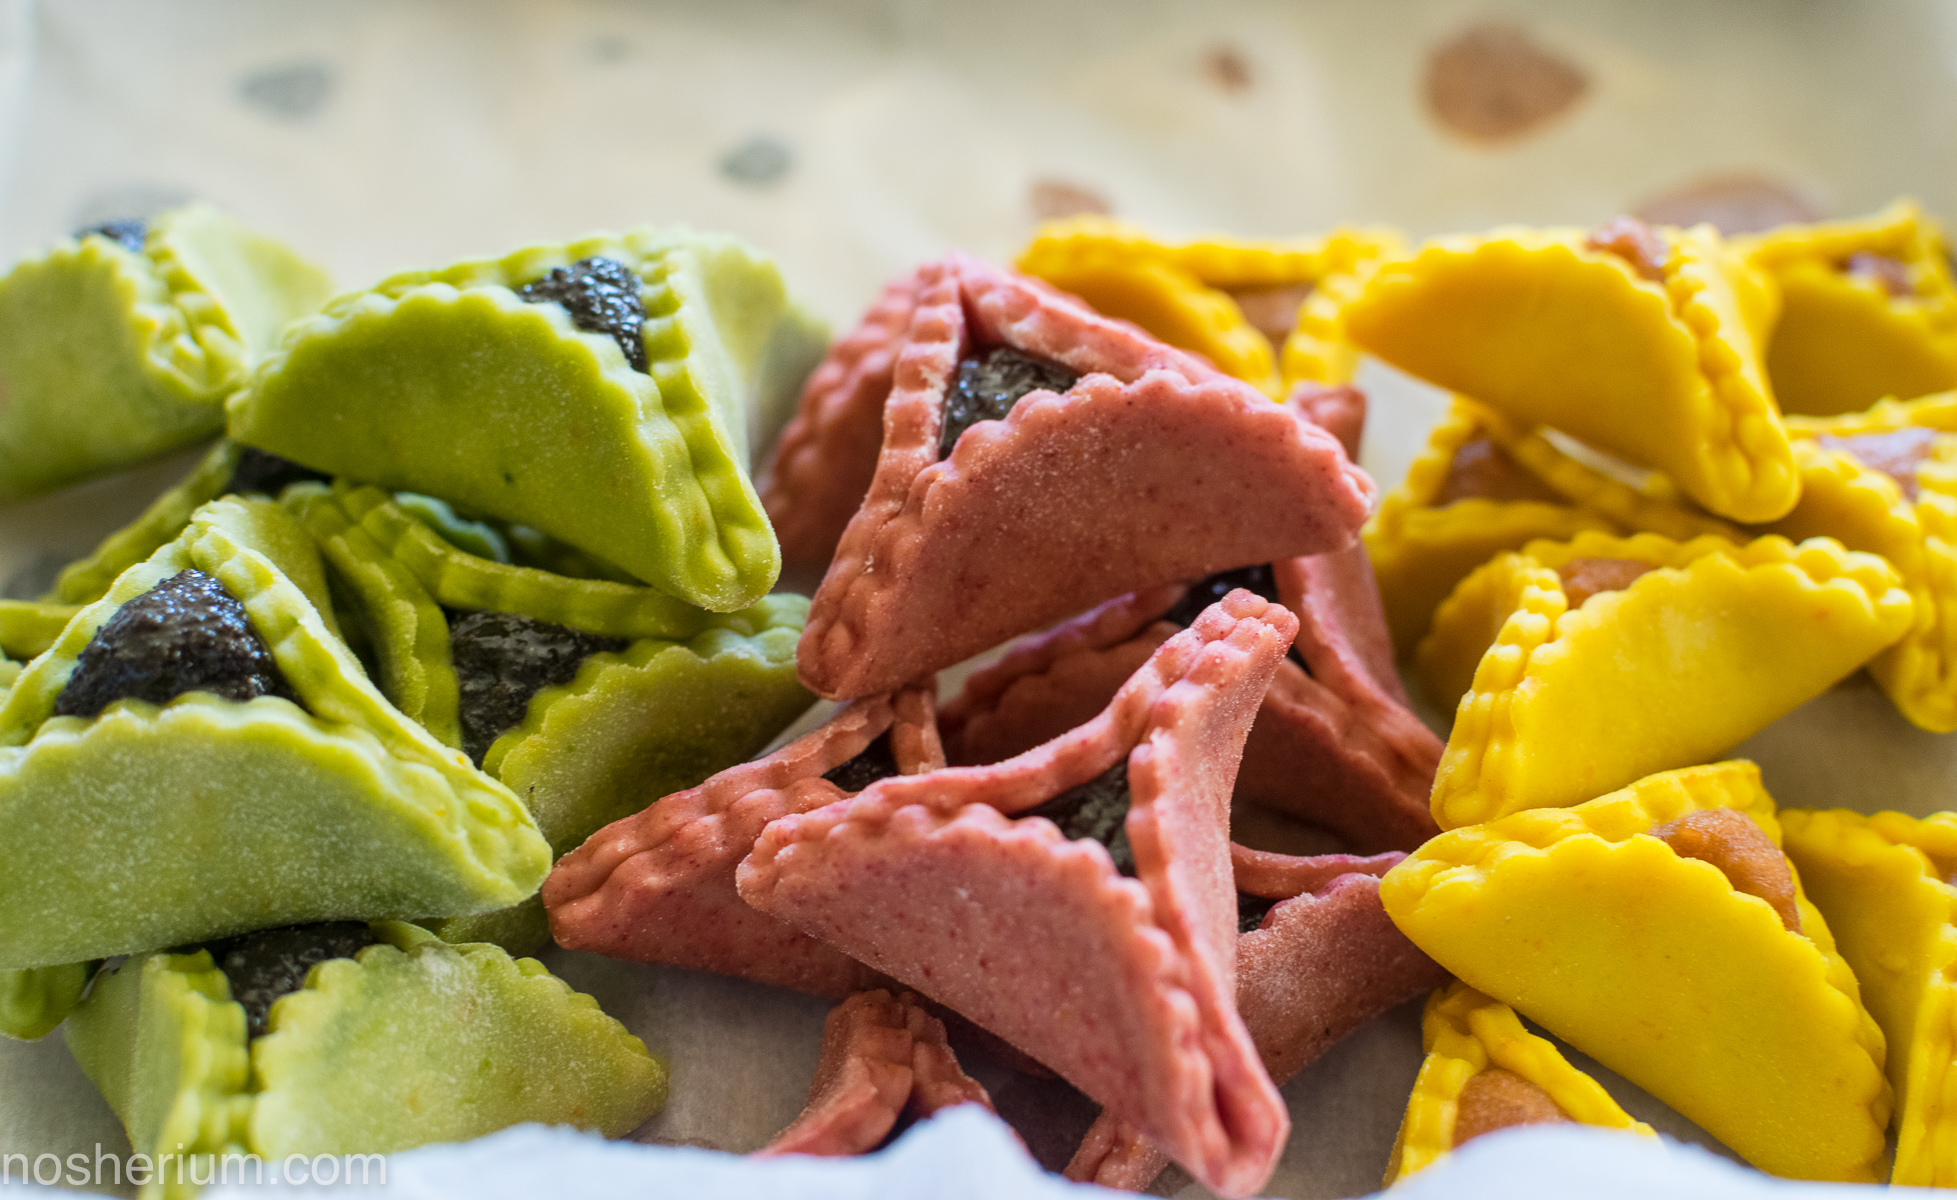 Nosherium Supernatural Colorful Hamantaschen Butter Cookies (2 of 9) - all natural dyes!